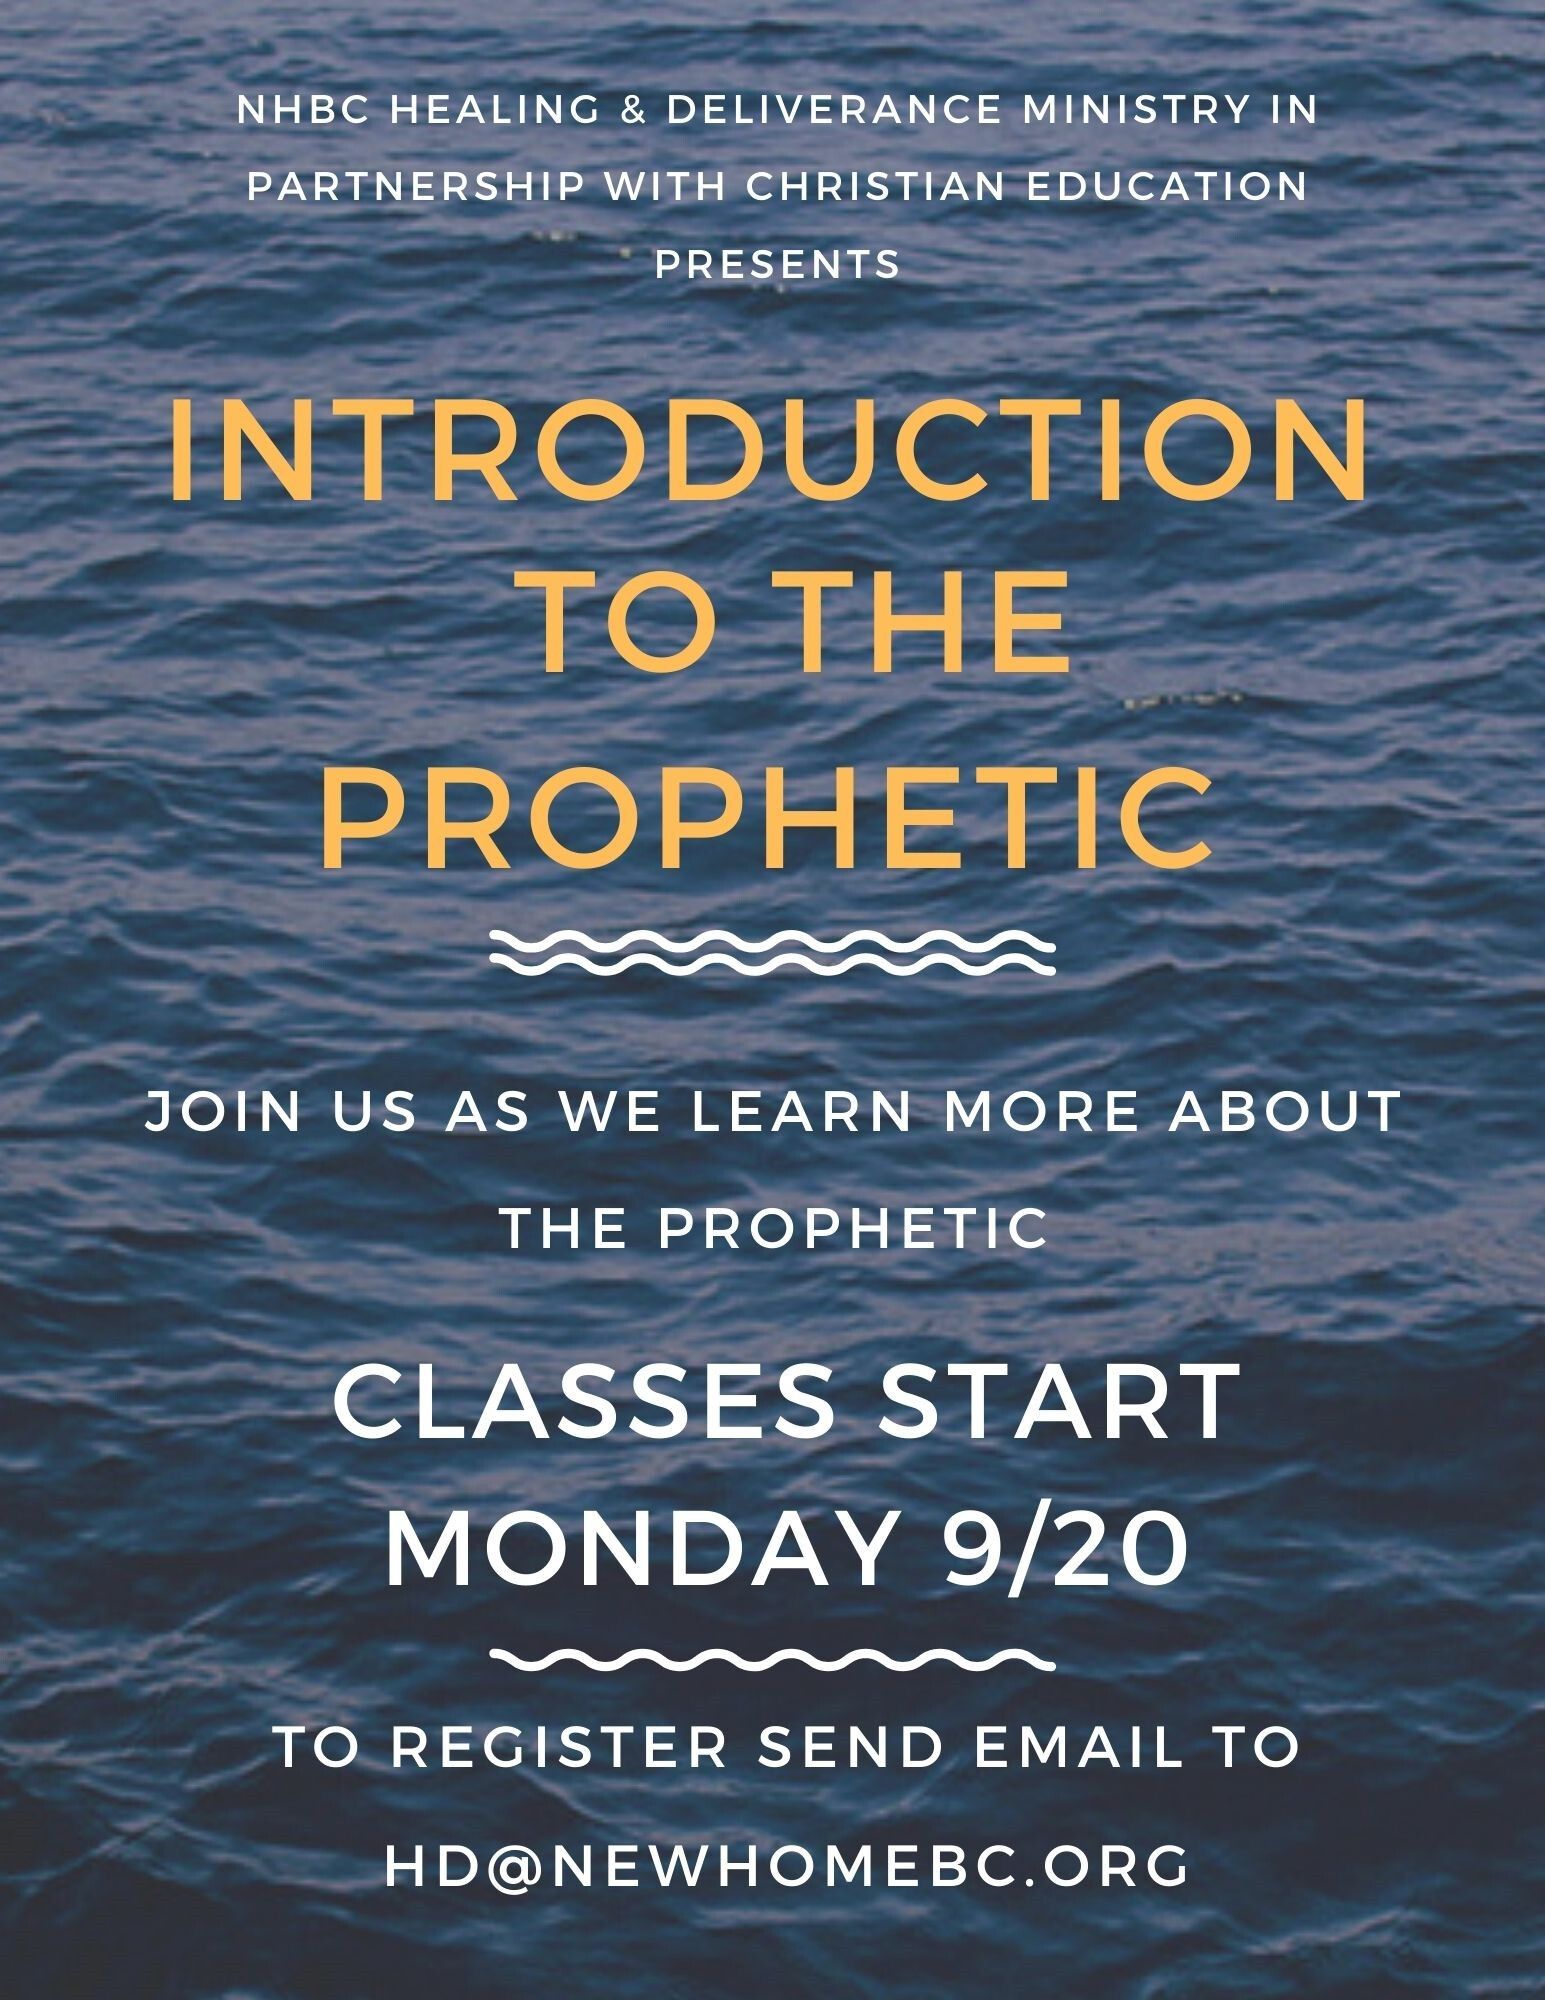 Healing & Deliverance - Introduction to the Prophetic